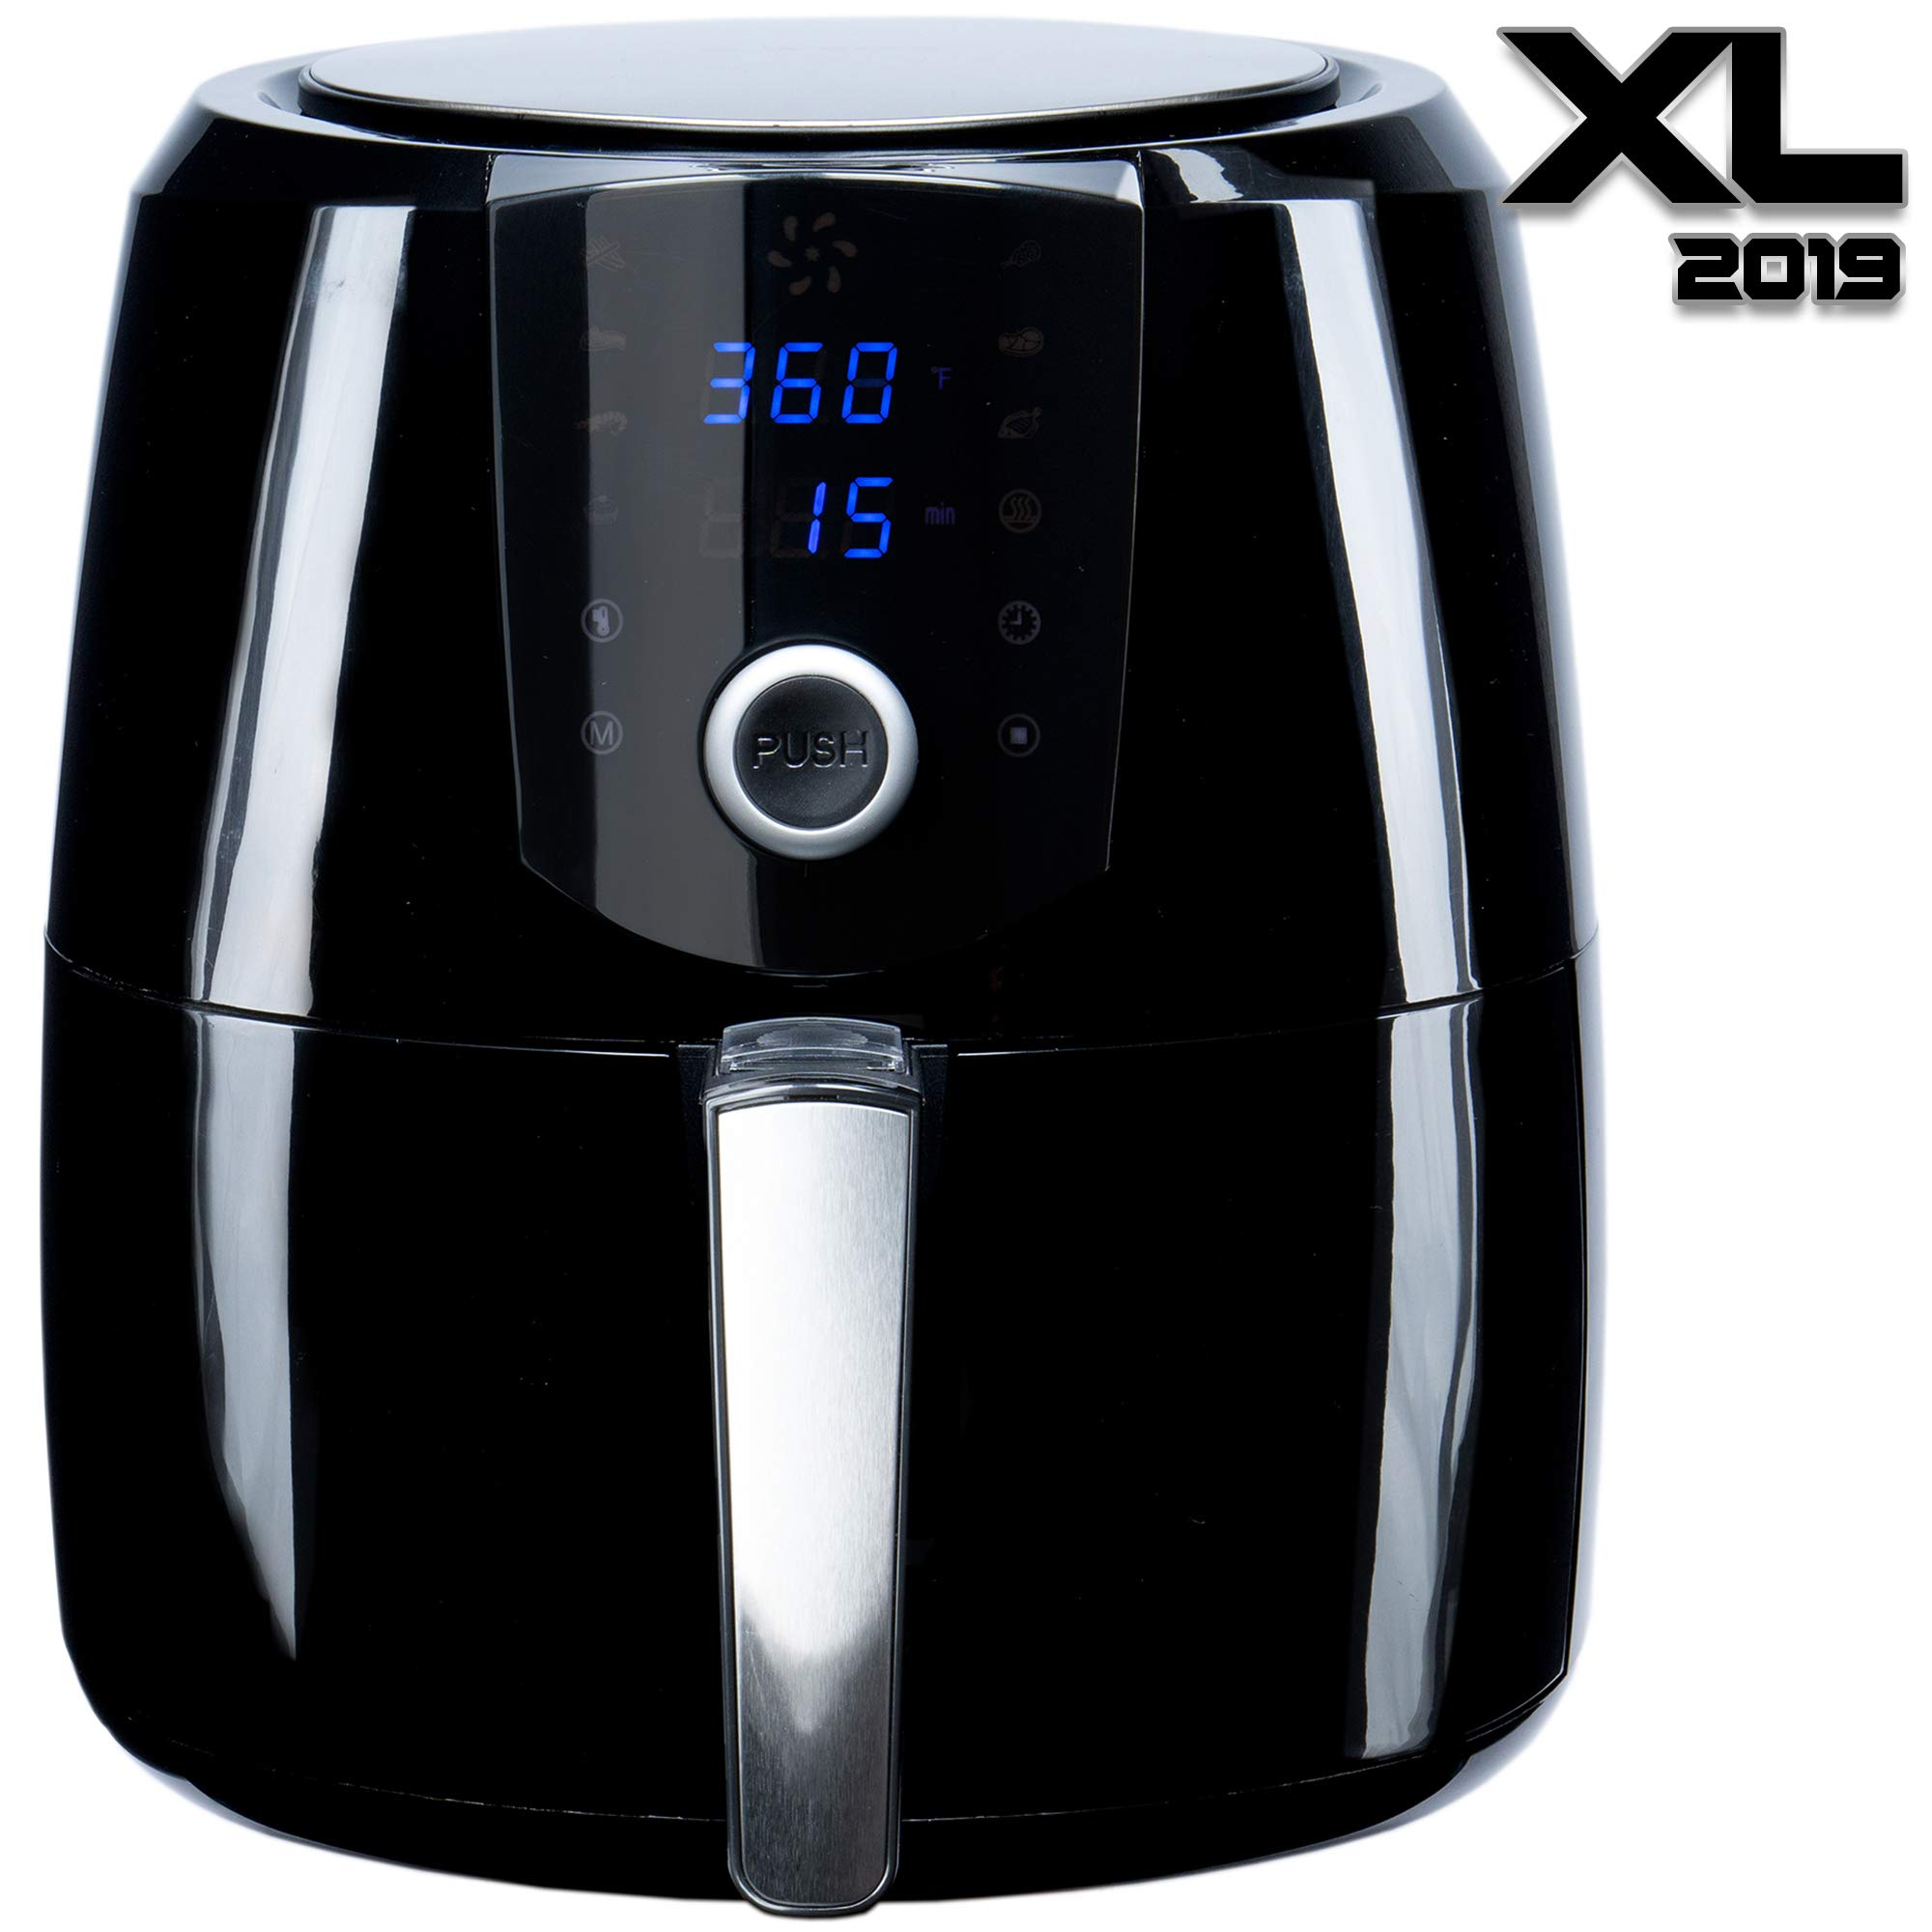 [2019] Air Fryer XL Best 5.5 QT Extreme Model 8-in-1 By (B. WEISS) Family Size Huge capacity,With Airfryer accessories; PIZZA Pan, (50 Recipes Cook Book),Toaster rack, Cooking Divider. XXL